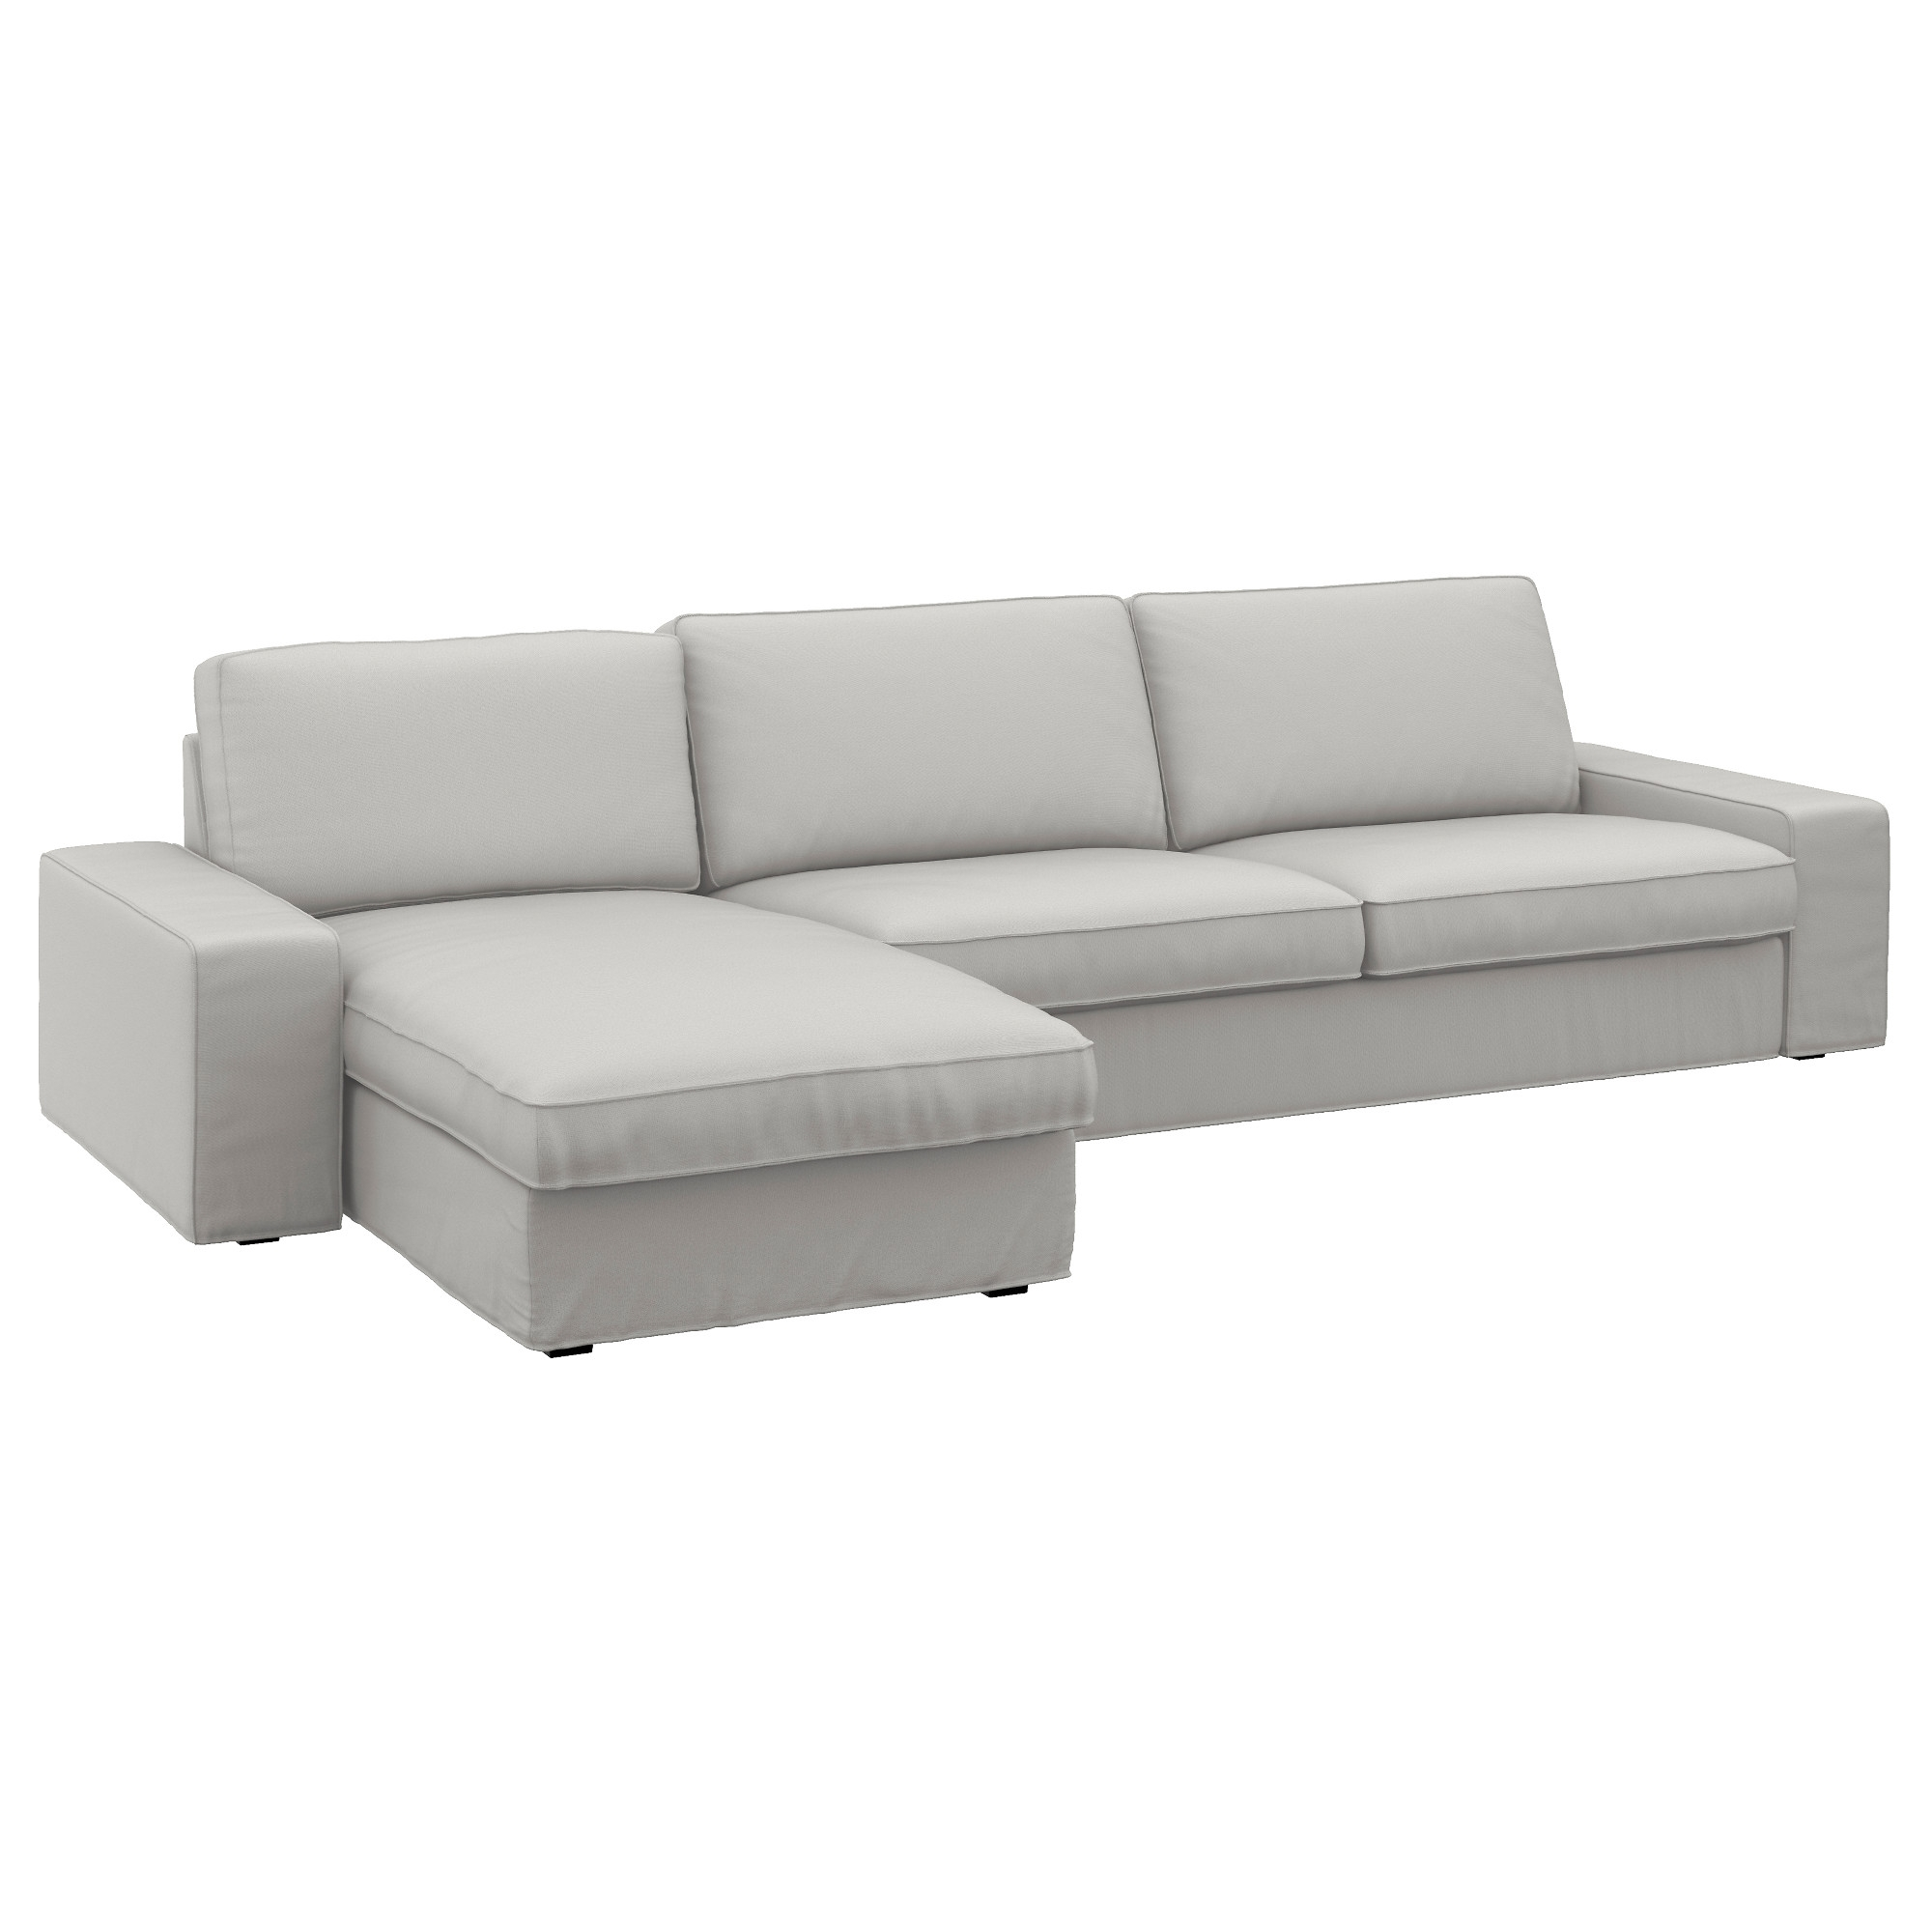 Famous 4 Seat Sofas With Kivik 4 Seat Sofa With Chaise Longue/ramna Light Grey – Ikea (View 7 of 15)